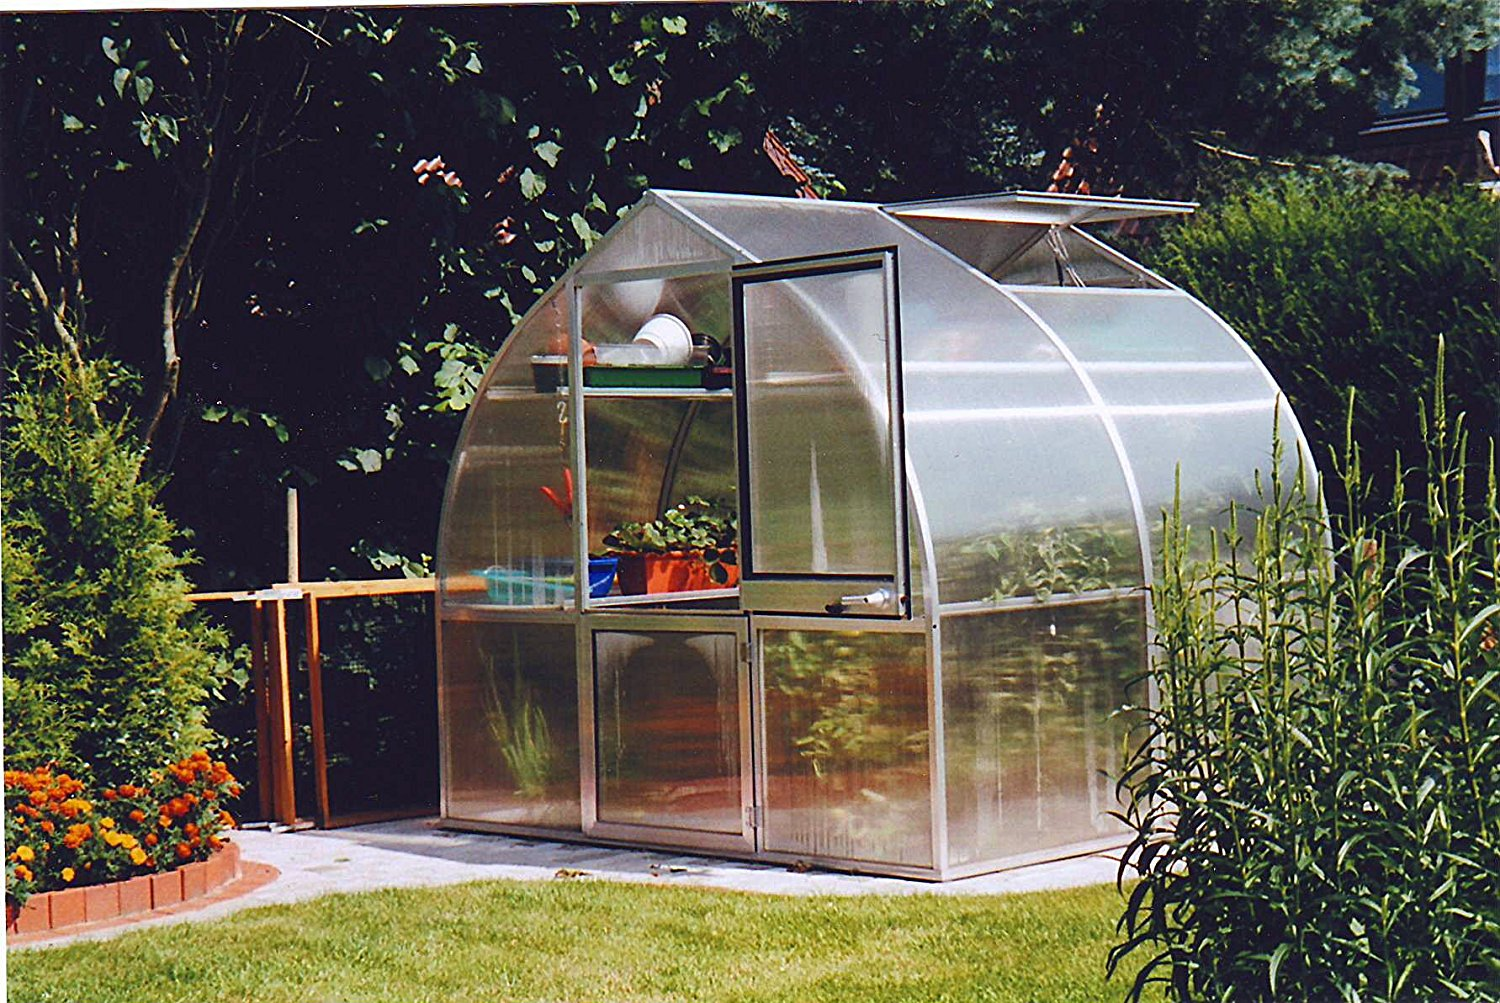 king canopy gh1010 10x10 feet fully enclosed greenhouse clear & Best greenhouse for your budget u2013 Greenhouse Hunt